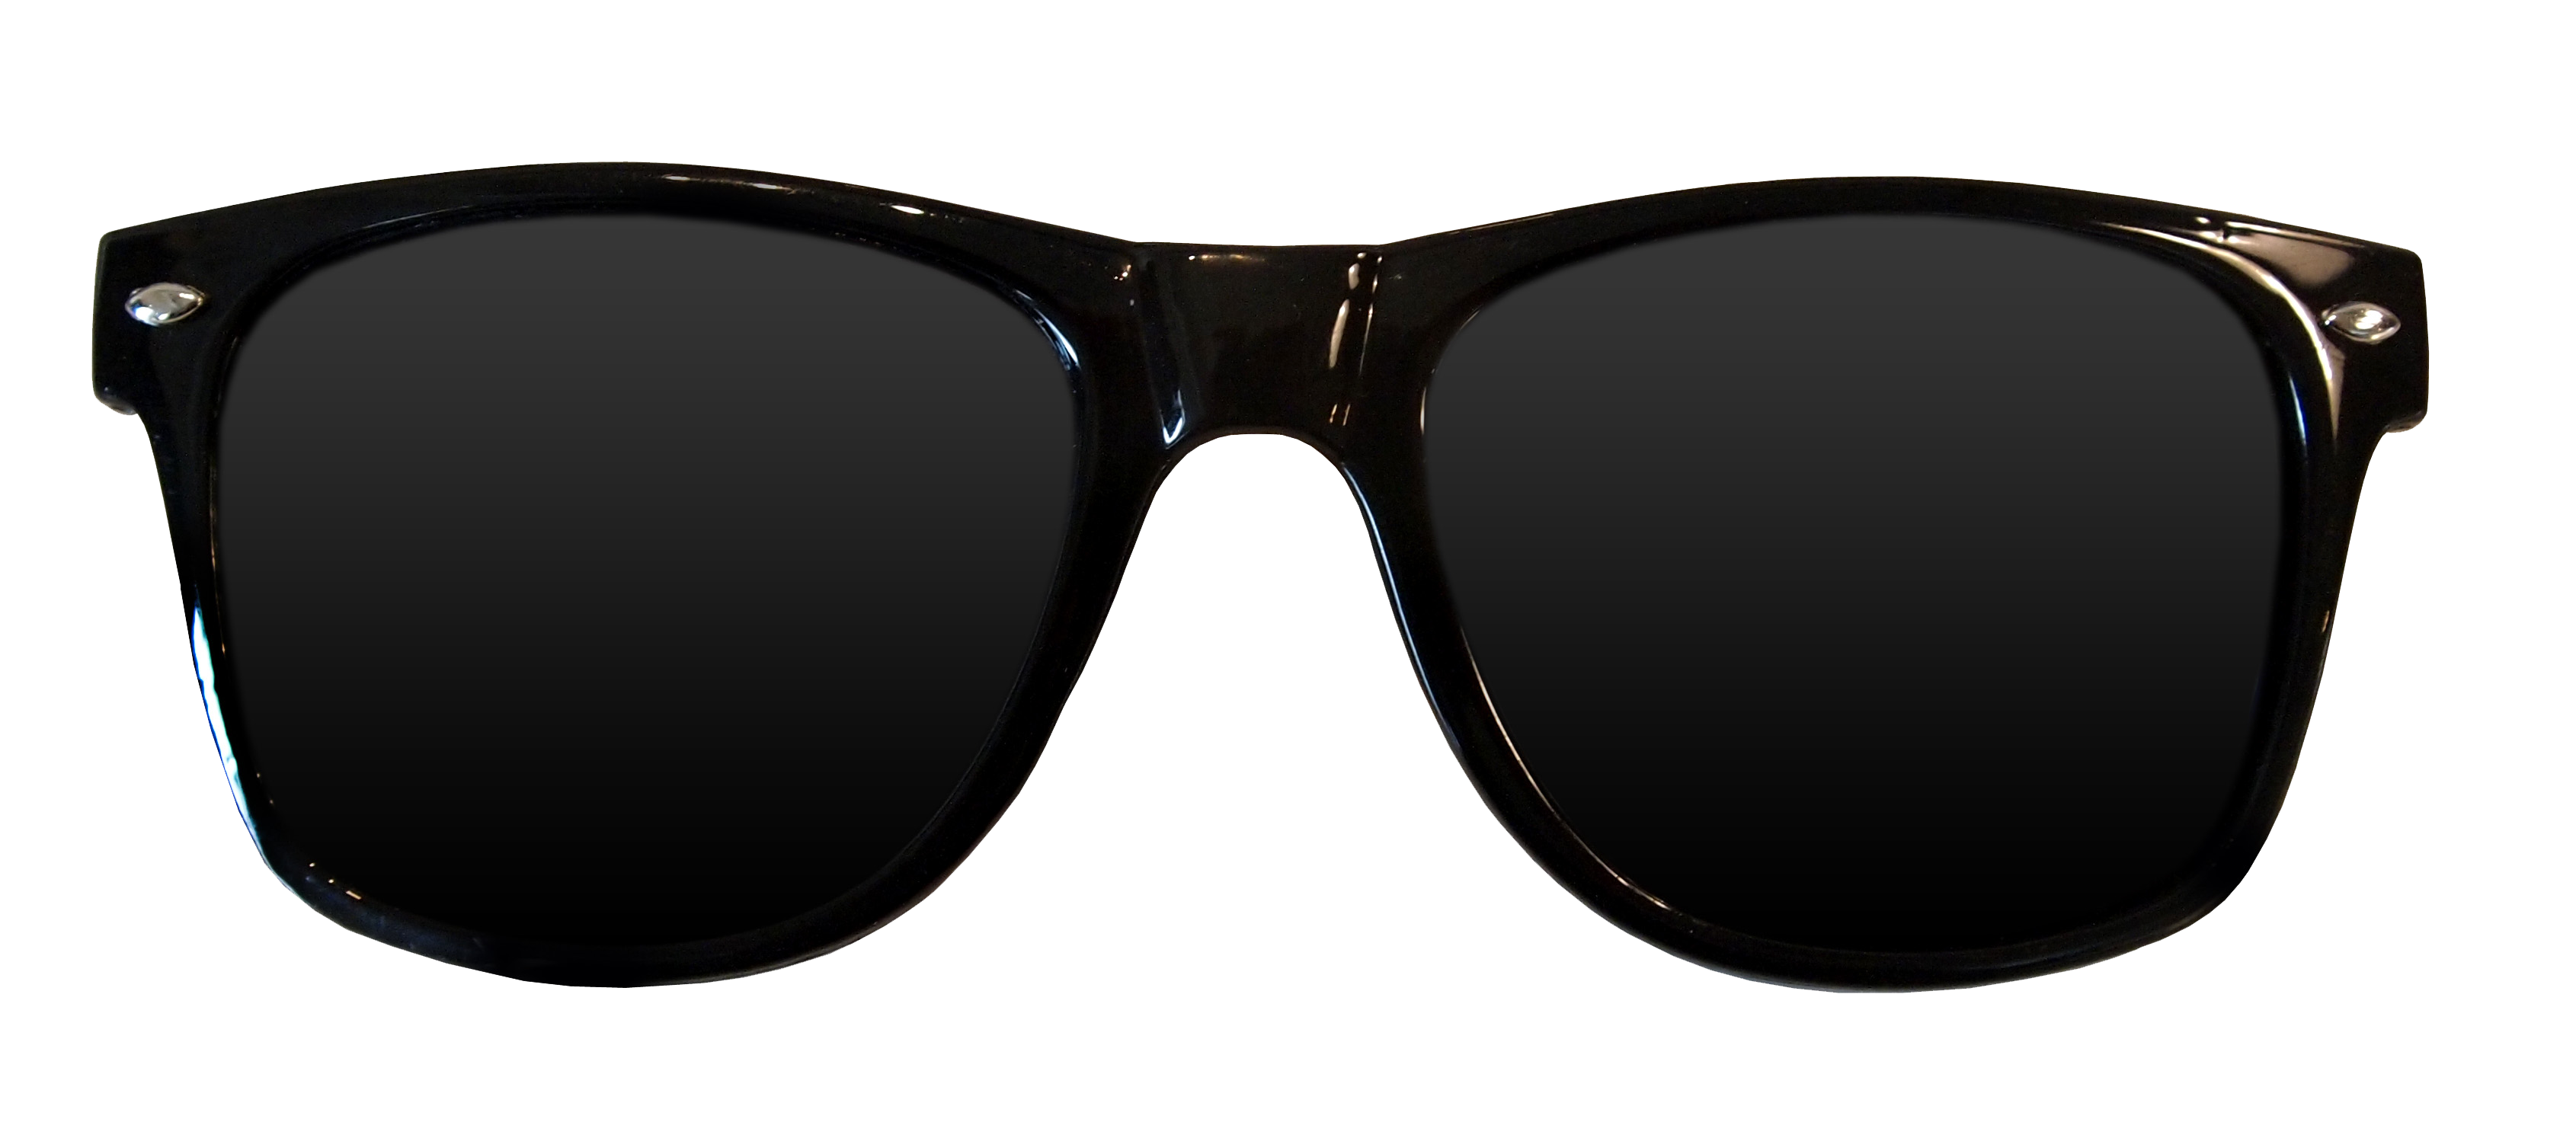 Sunglasses PNG - 22874